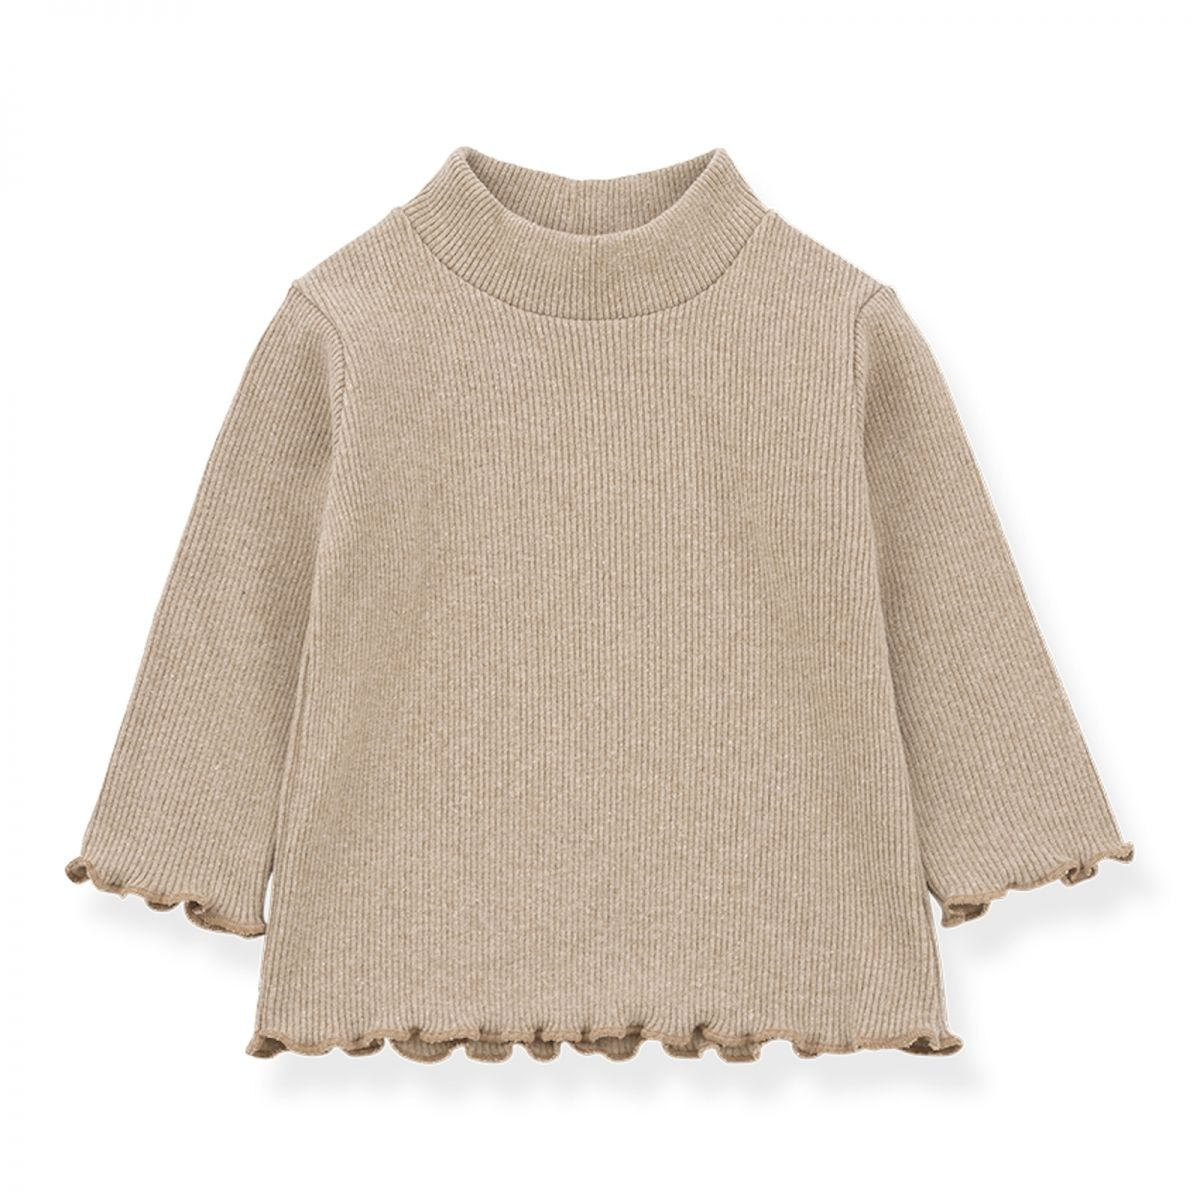 Nice turtleneck top beige - 1 + in the family